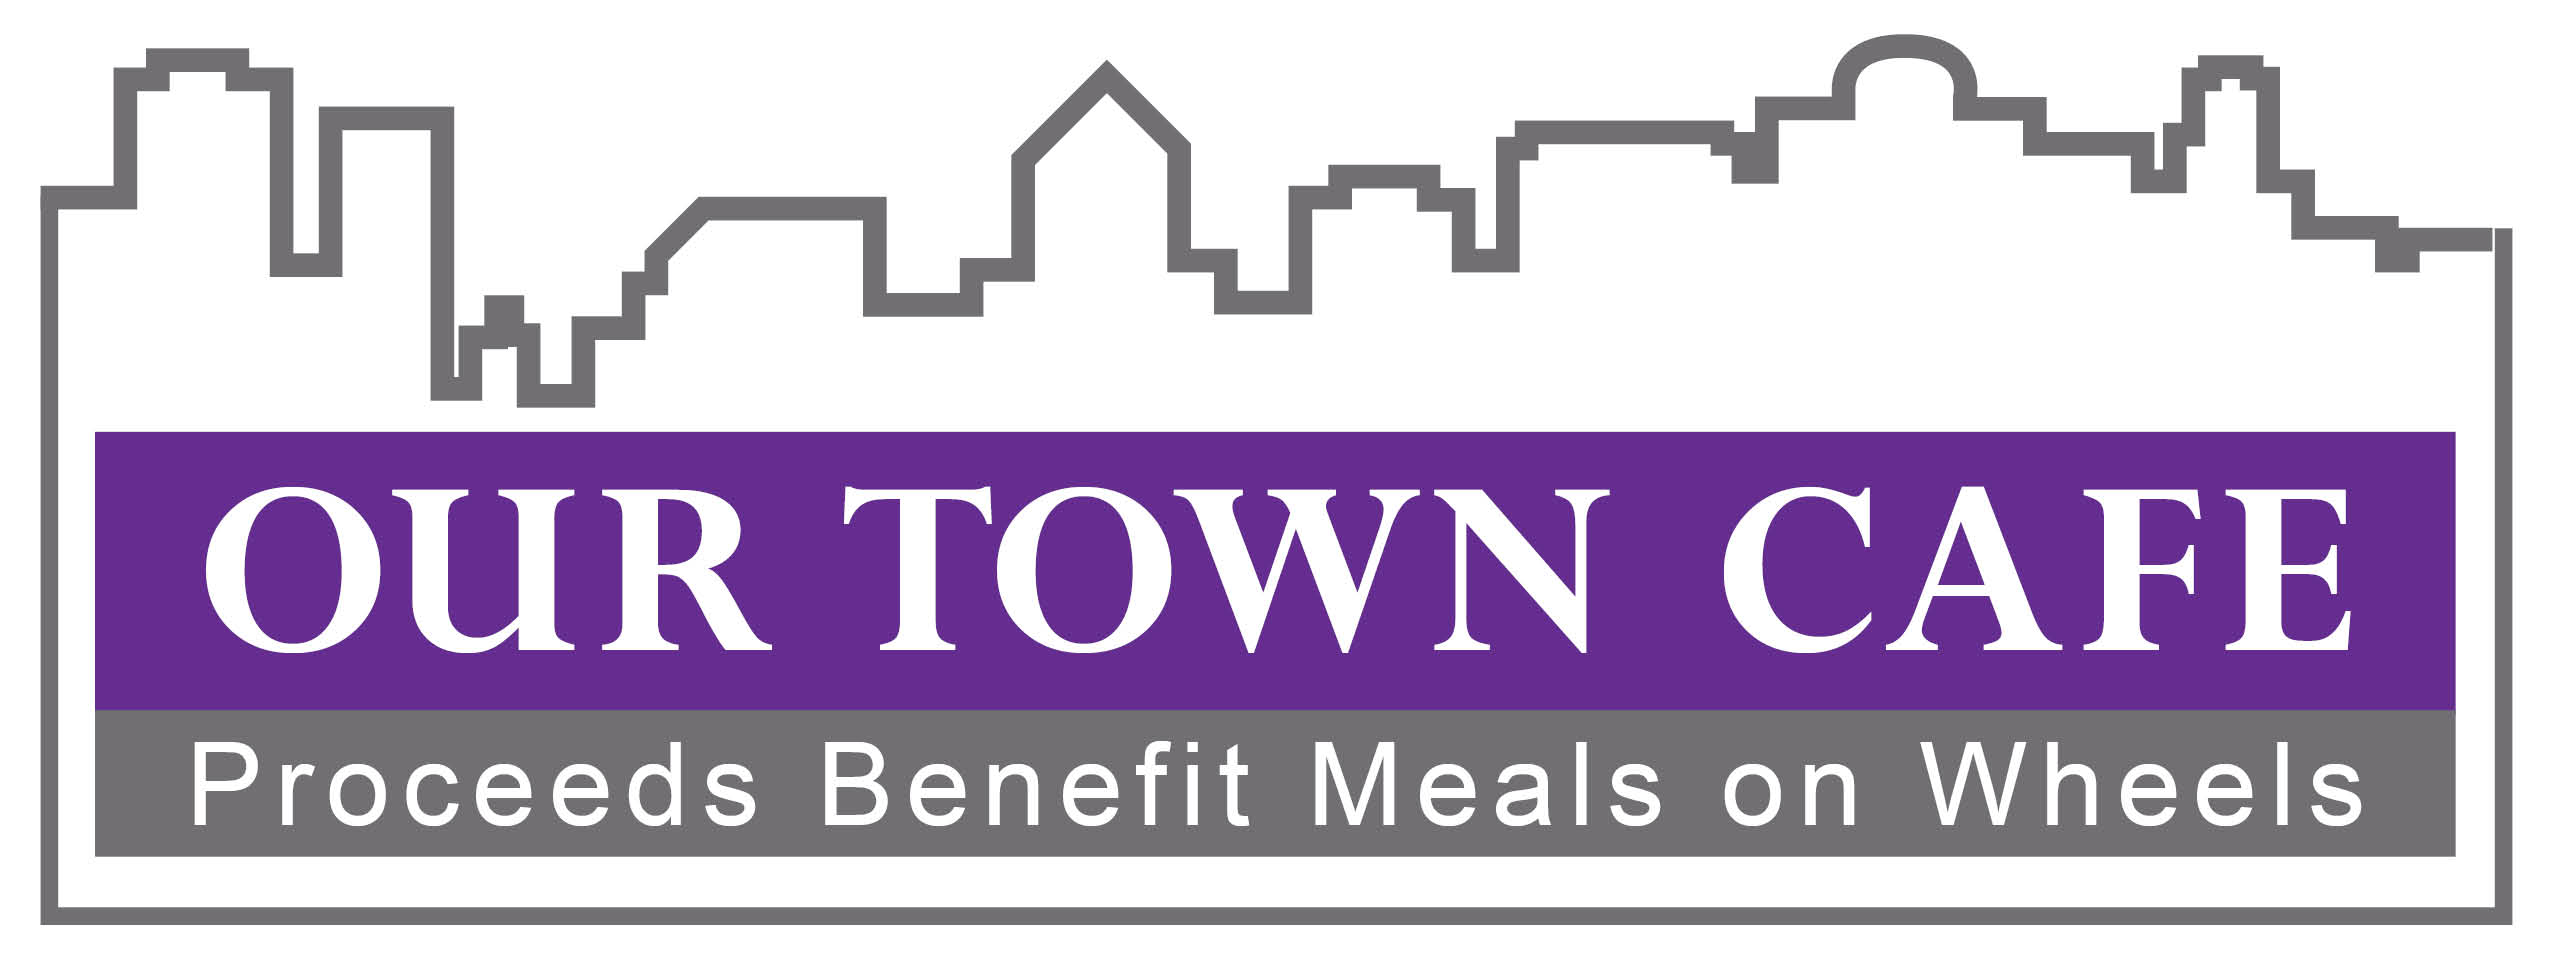 Our Town Cafe Logo